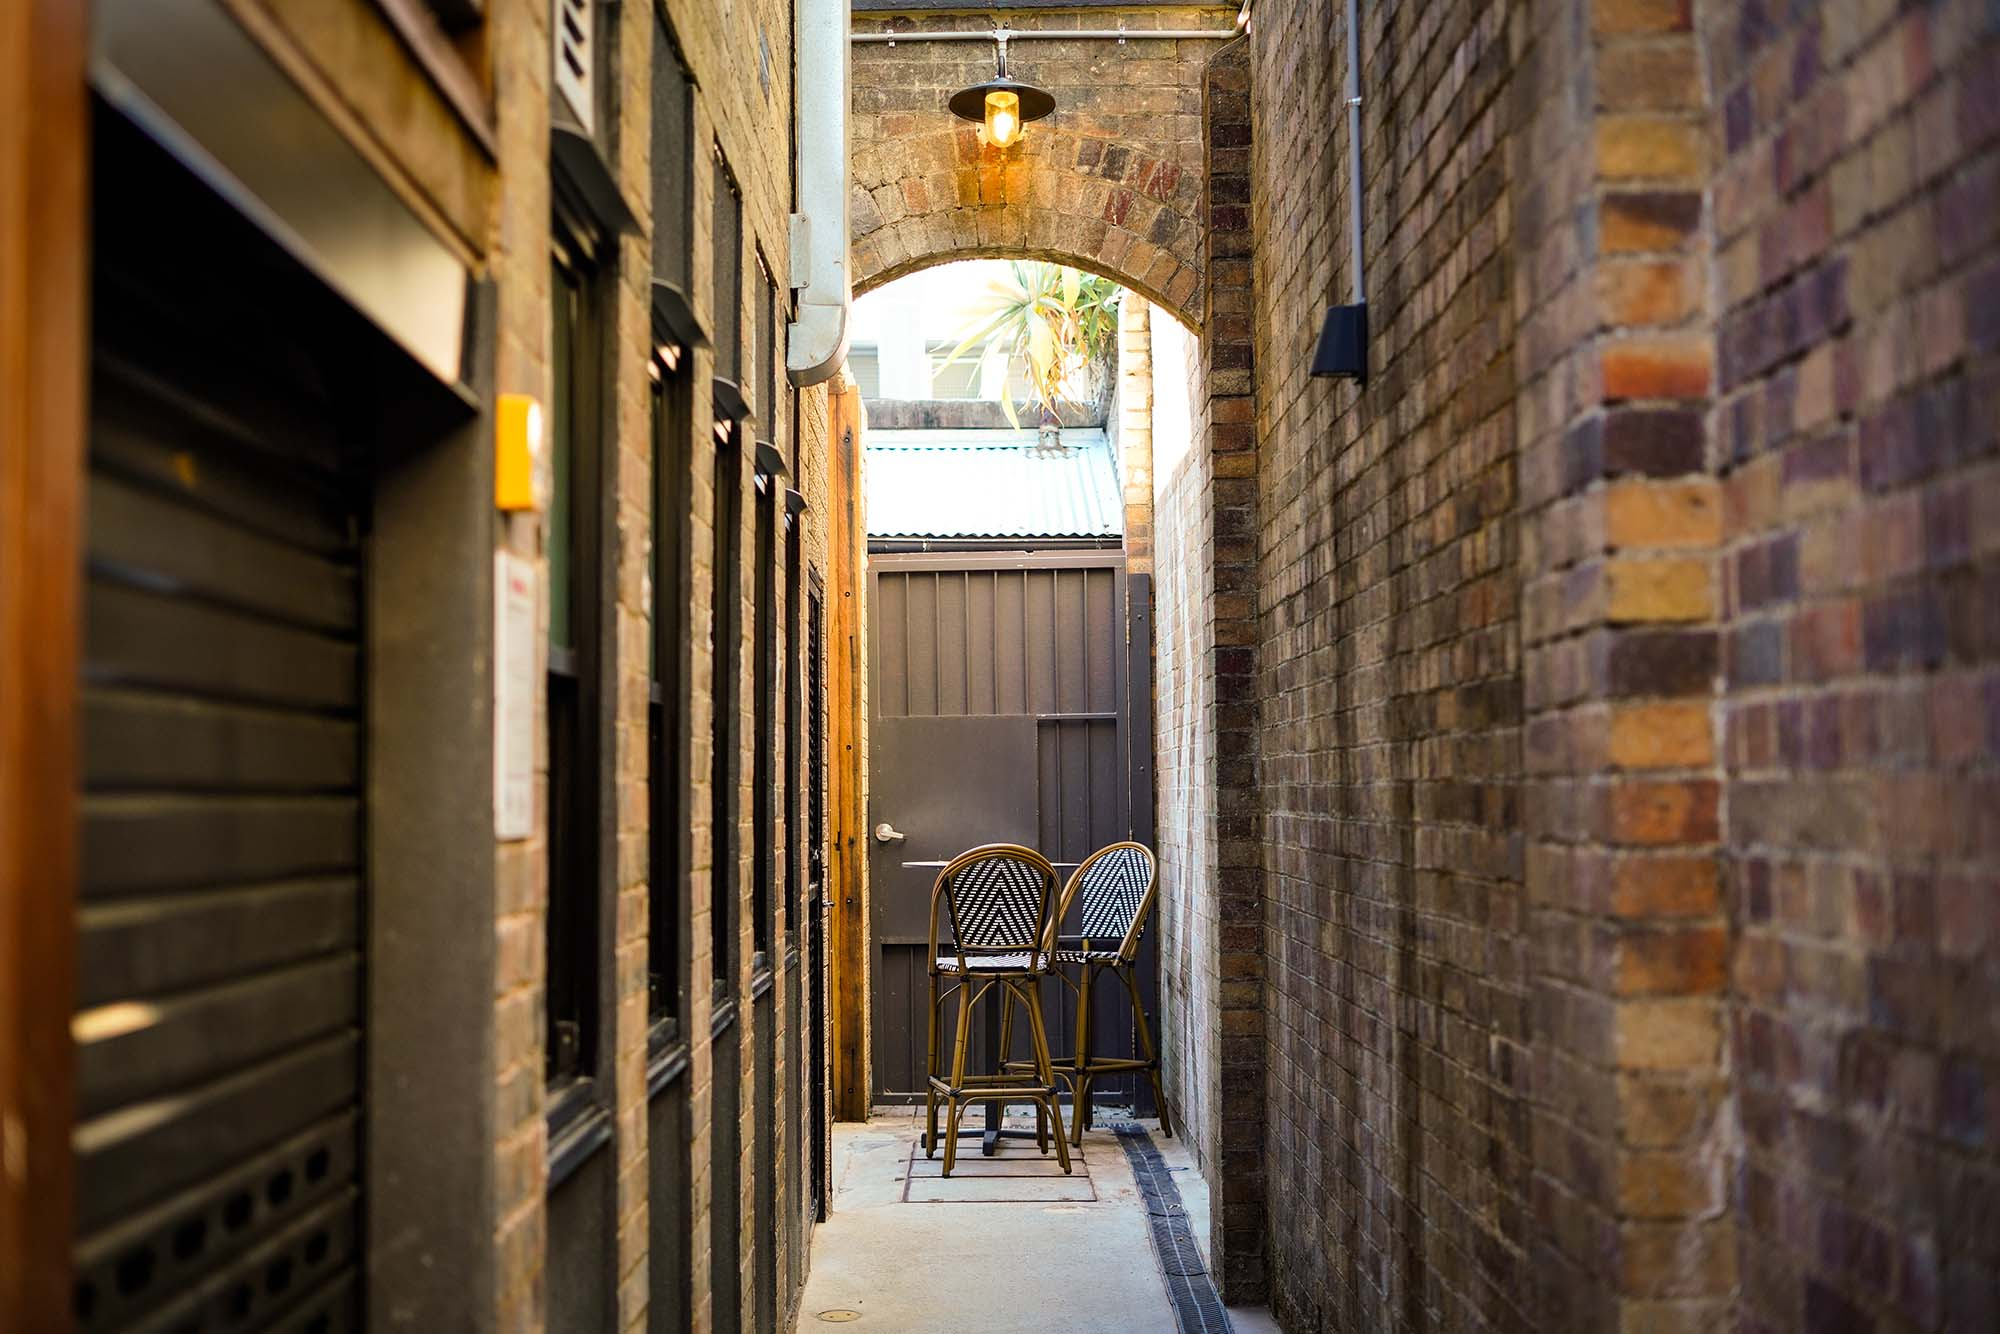 The Hotel Carrington Fortitude Valley